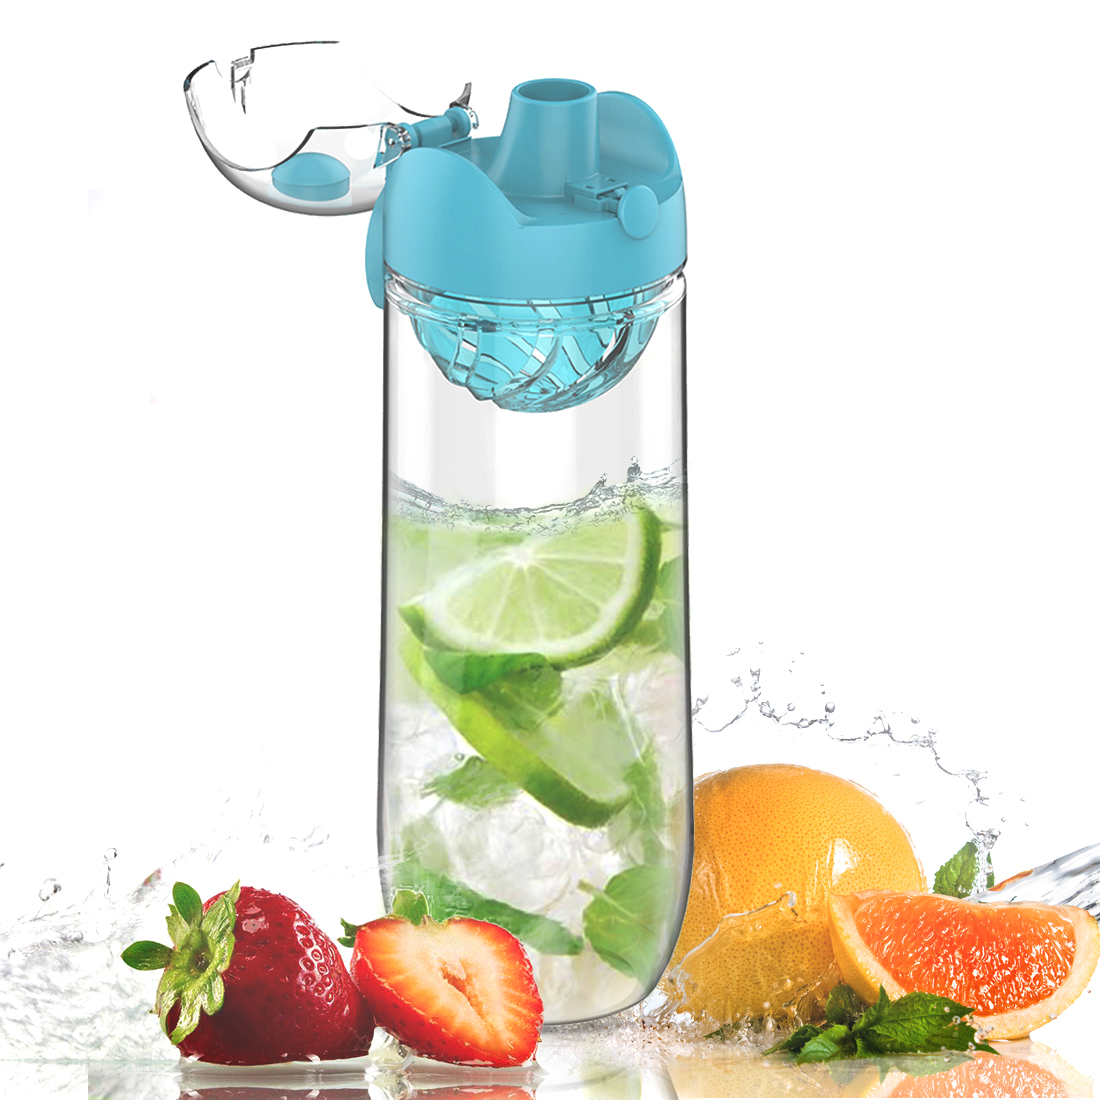 AVOIN colorlife Sports and Outdoors Fruit Infusion Water Bottle with 2nd Generation Premium Infuser & One-Click Flip Top - 32oz Large, BPA Free - Your Healthy Hydration Made Easy